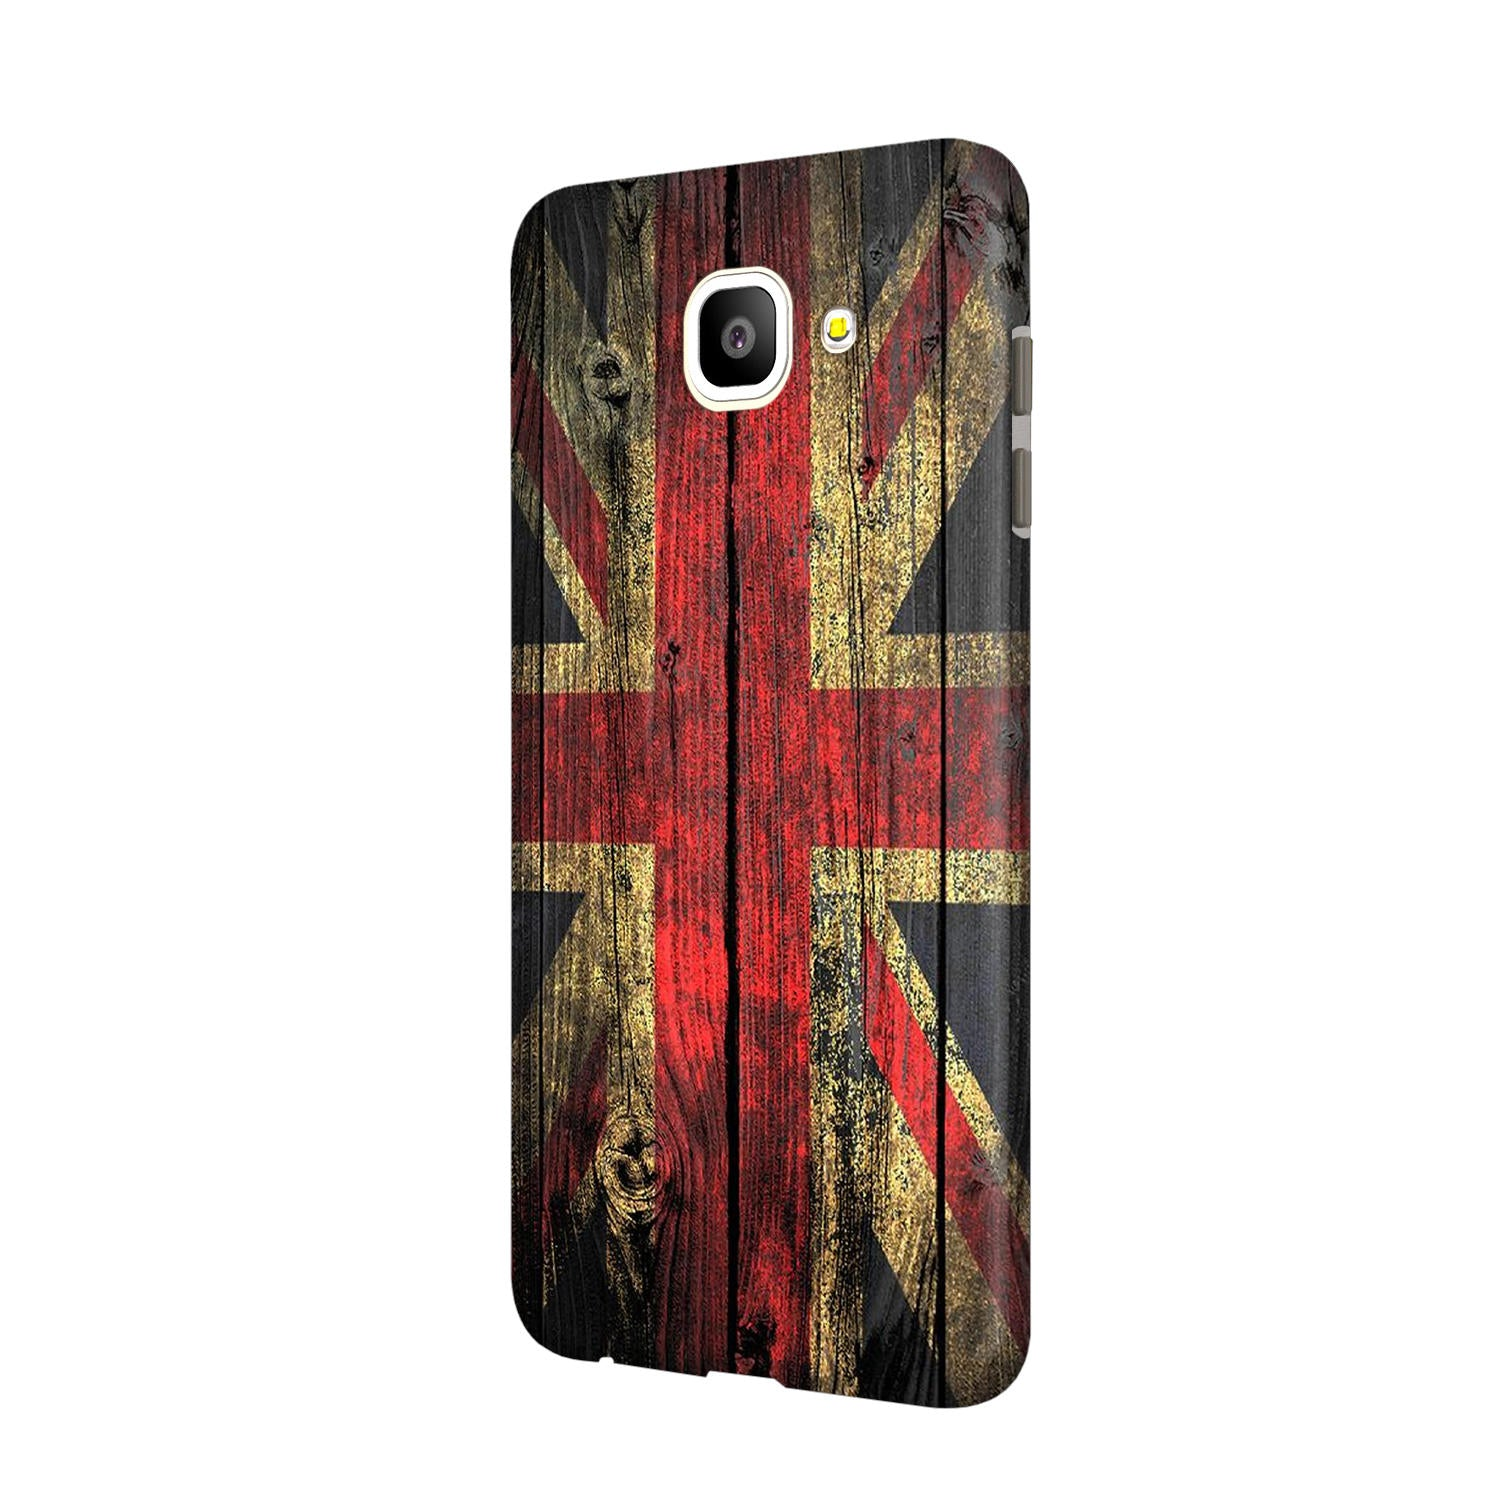 Union Jack Samsung Galaxy J7 Max Mobile Cover Case - MADANYU